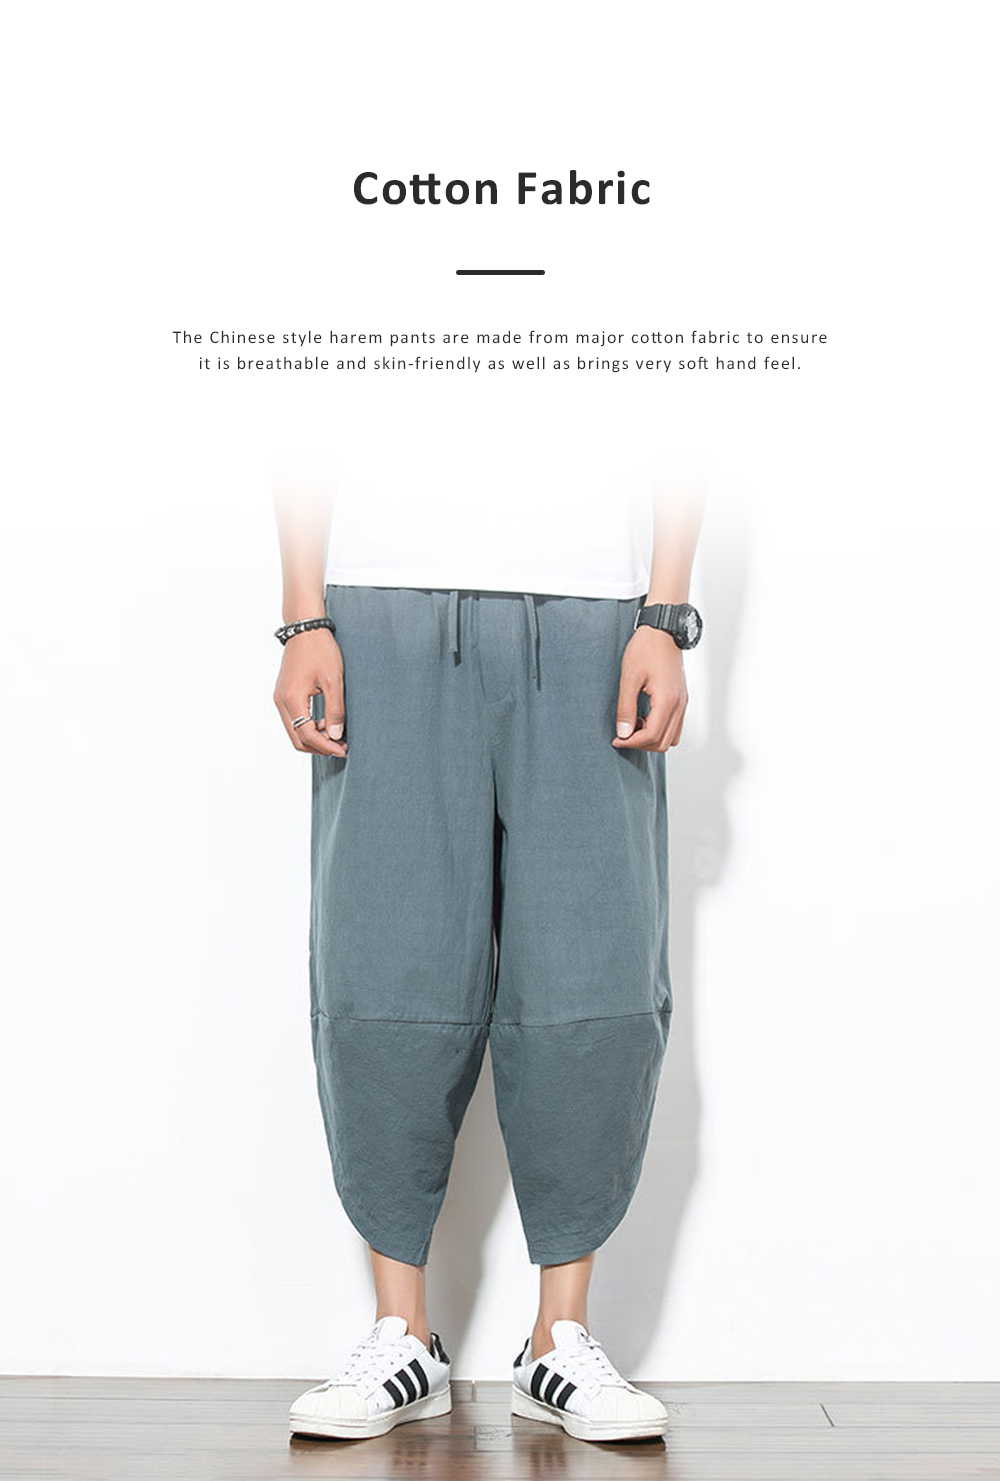 Mid-rise Loose Version Hip Pants Large Size Cropped Trousers for Men Wear Summer Casual Stylish Loose Pants 3